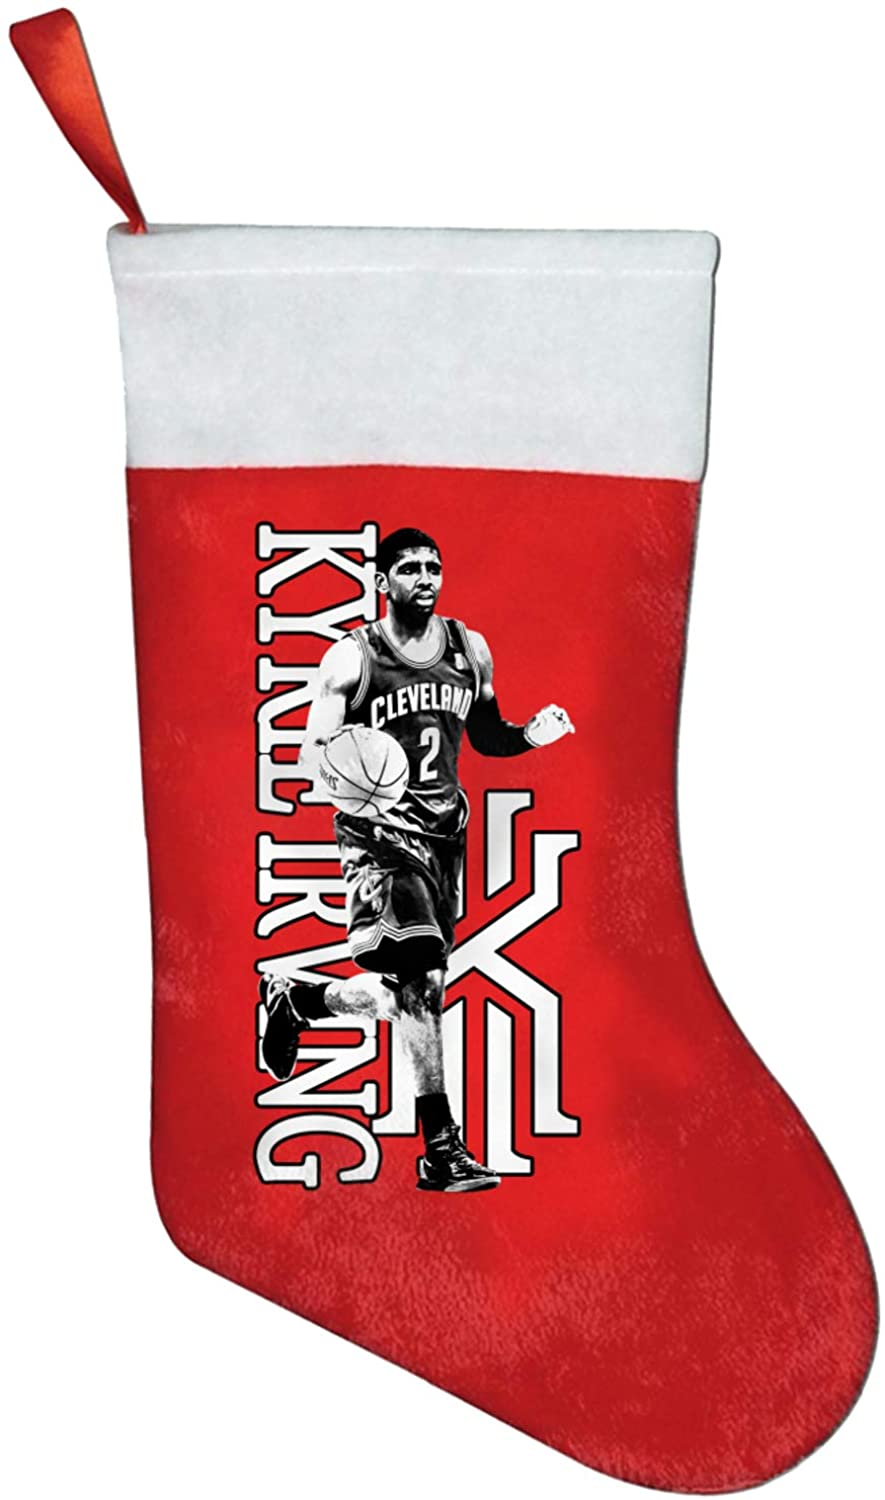 Sneakersssa Irving Christmas Santa Stockings Red Fireplace Hanging Stockings For Family Holiday Xmas Party Decorations